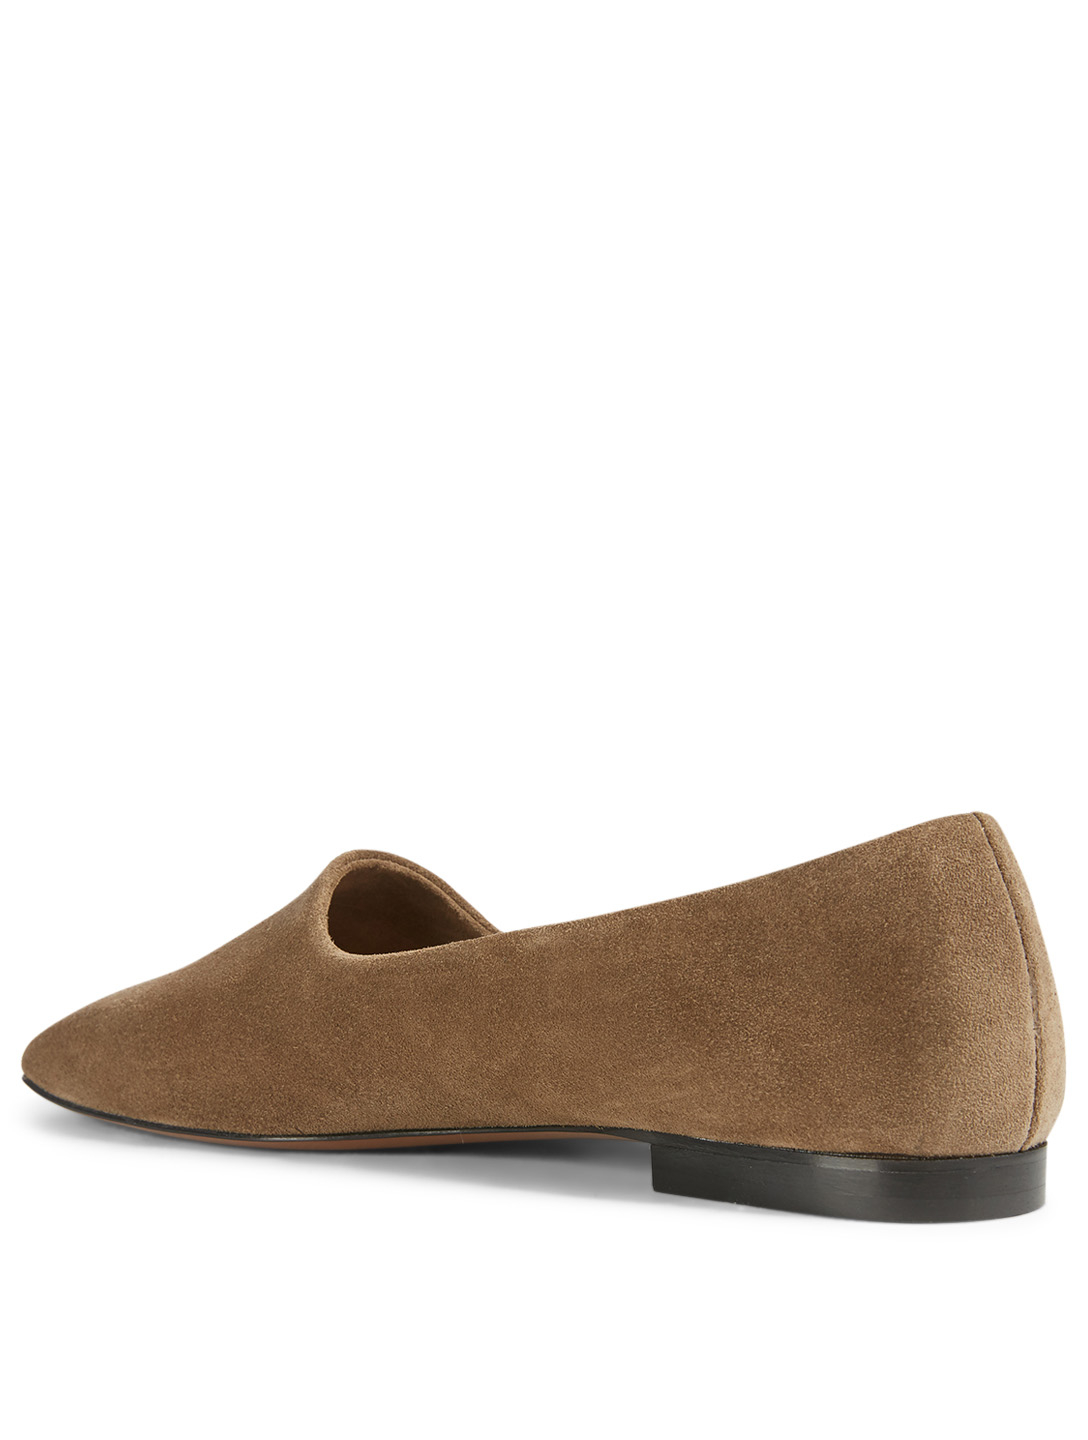 ATP ATELIER Andrano Suede Loafers Women's Brown